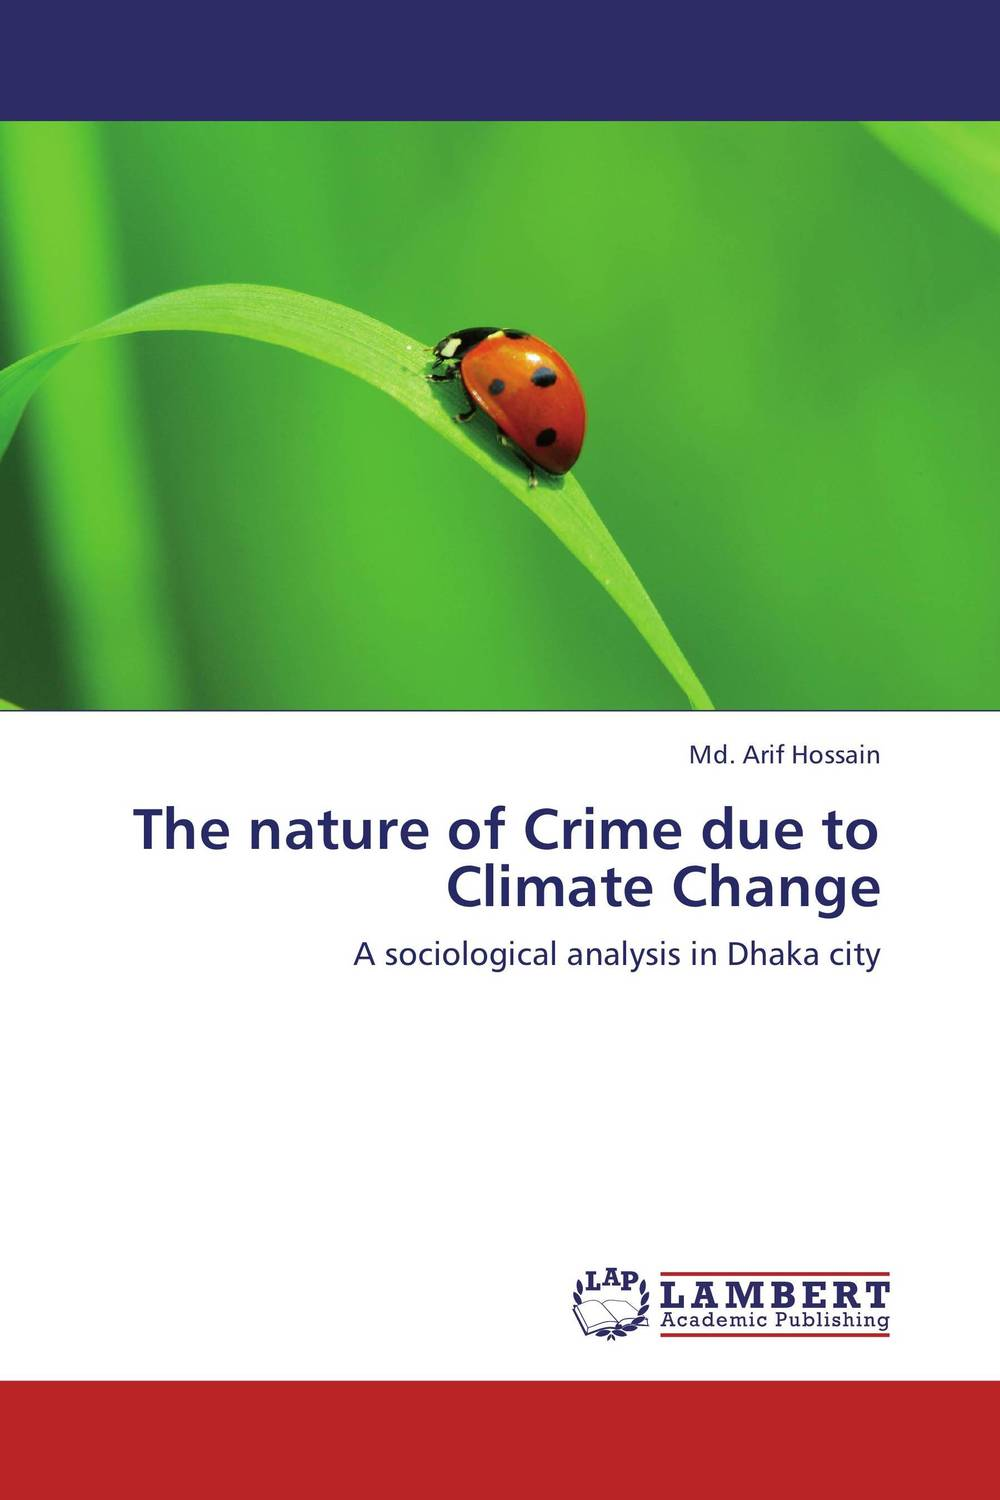 The nature of Crime due to Climate Change david pottruck s stacking the deck how to lead breakthrough change against any odds